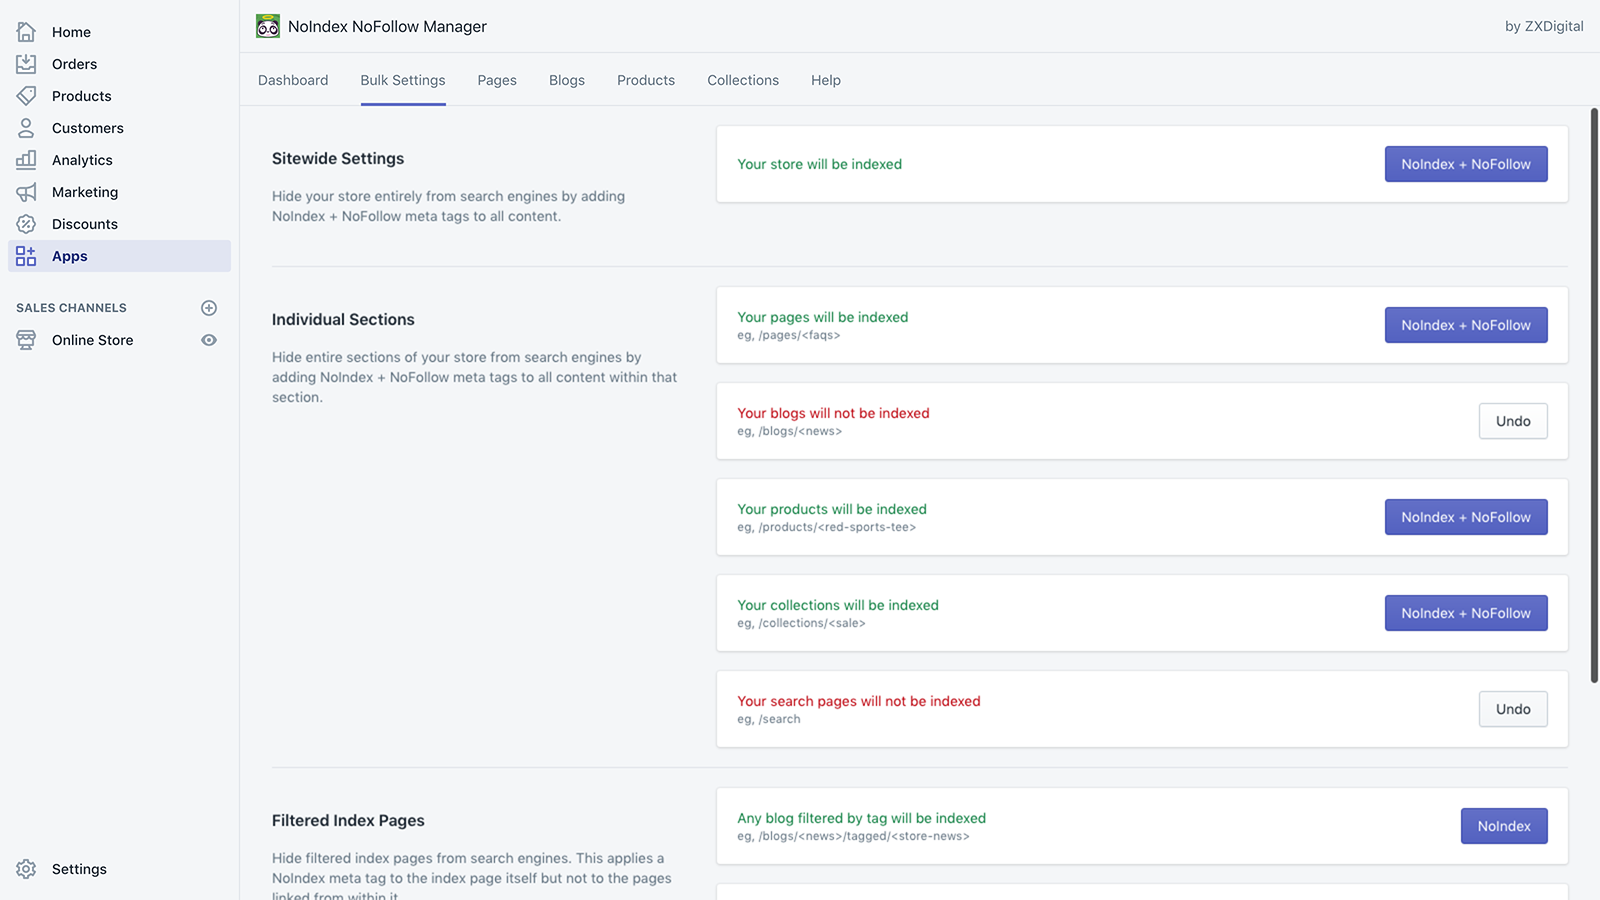 Easily configure noindex and nofollow meta tags sitewide